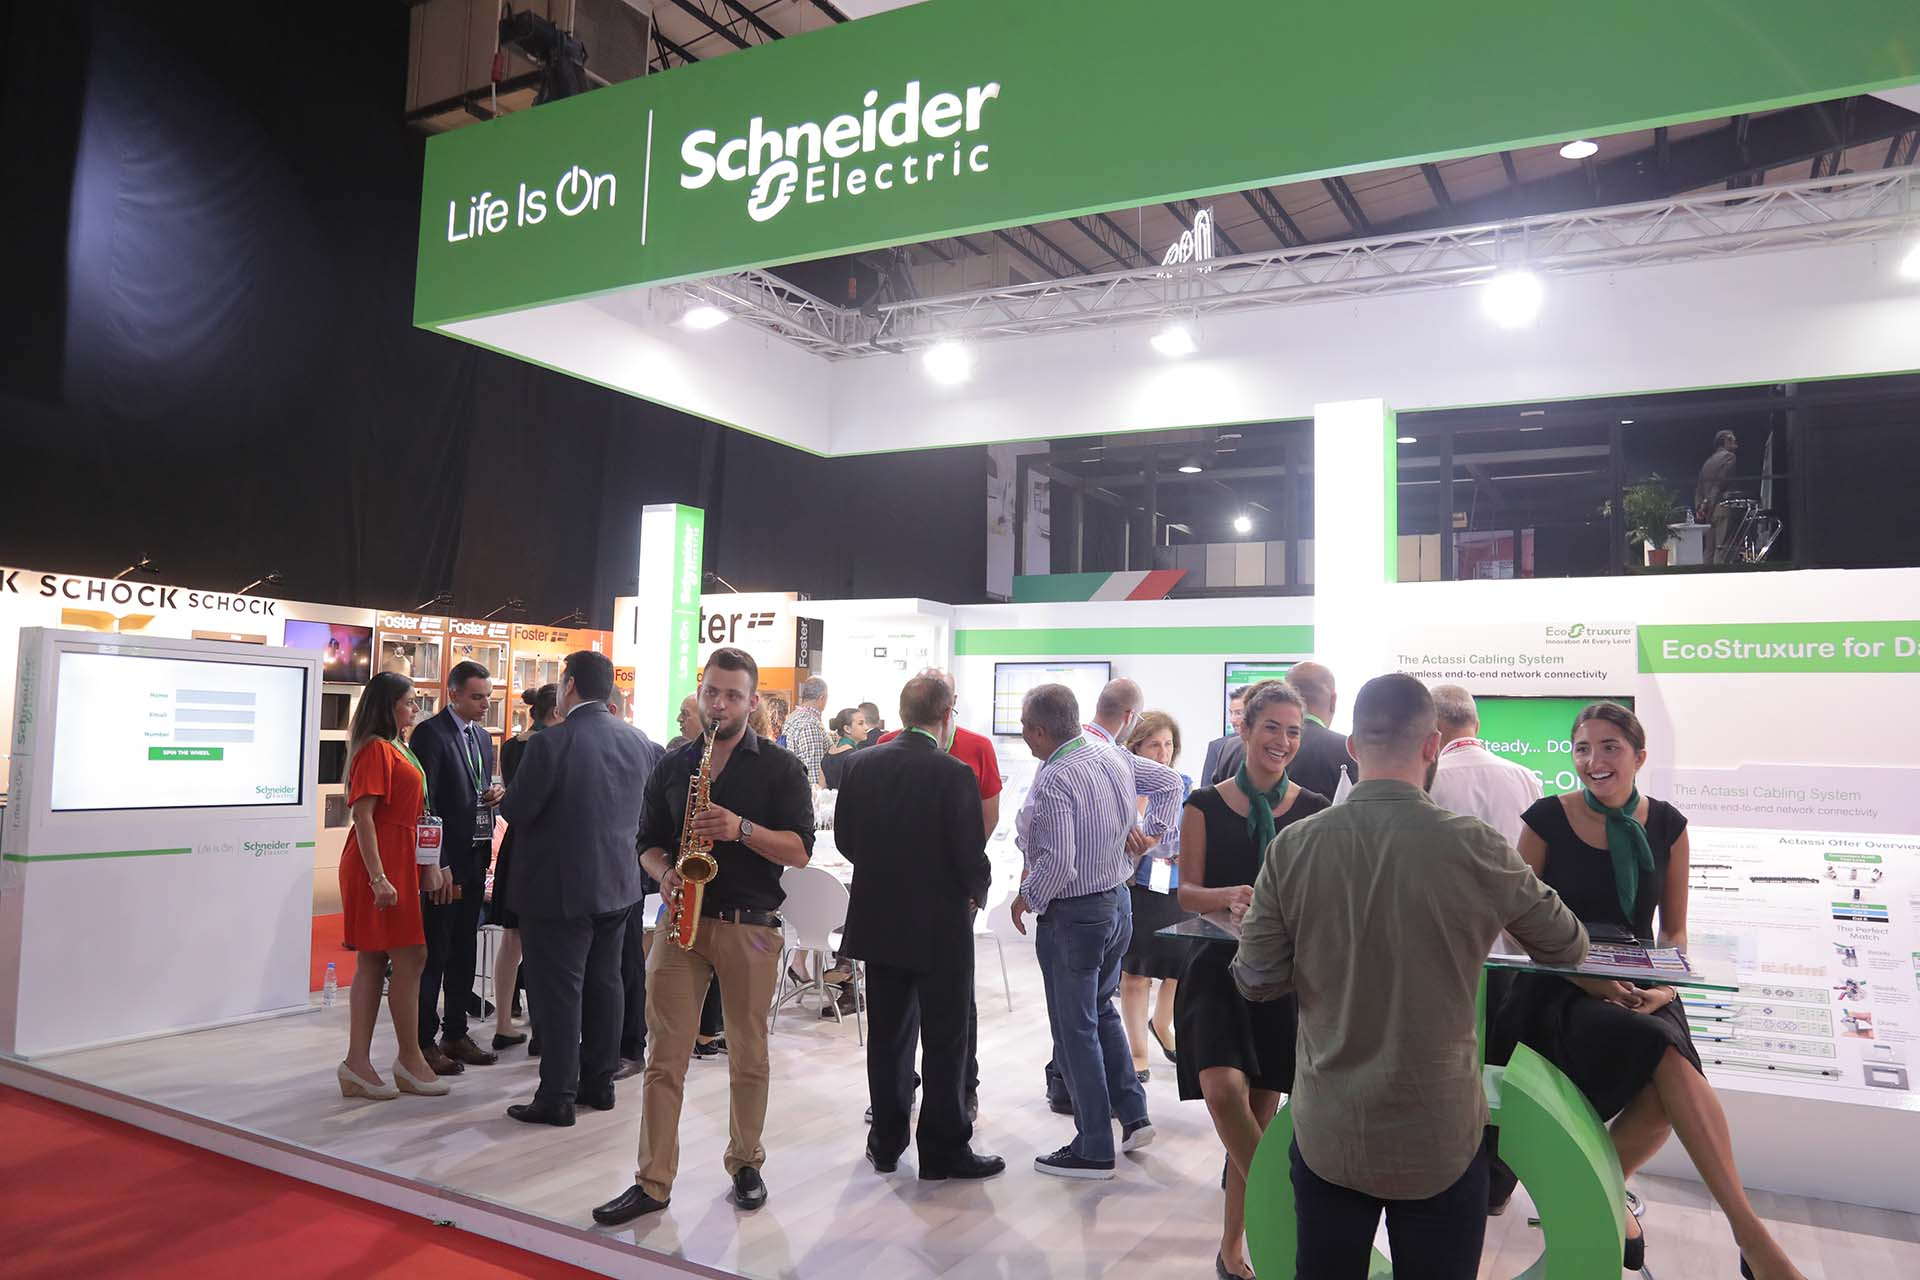 Schneider Electric Stand at Project Lebanon Exhibition